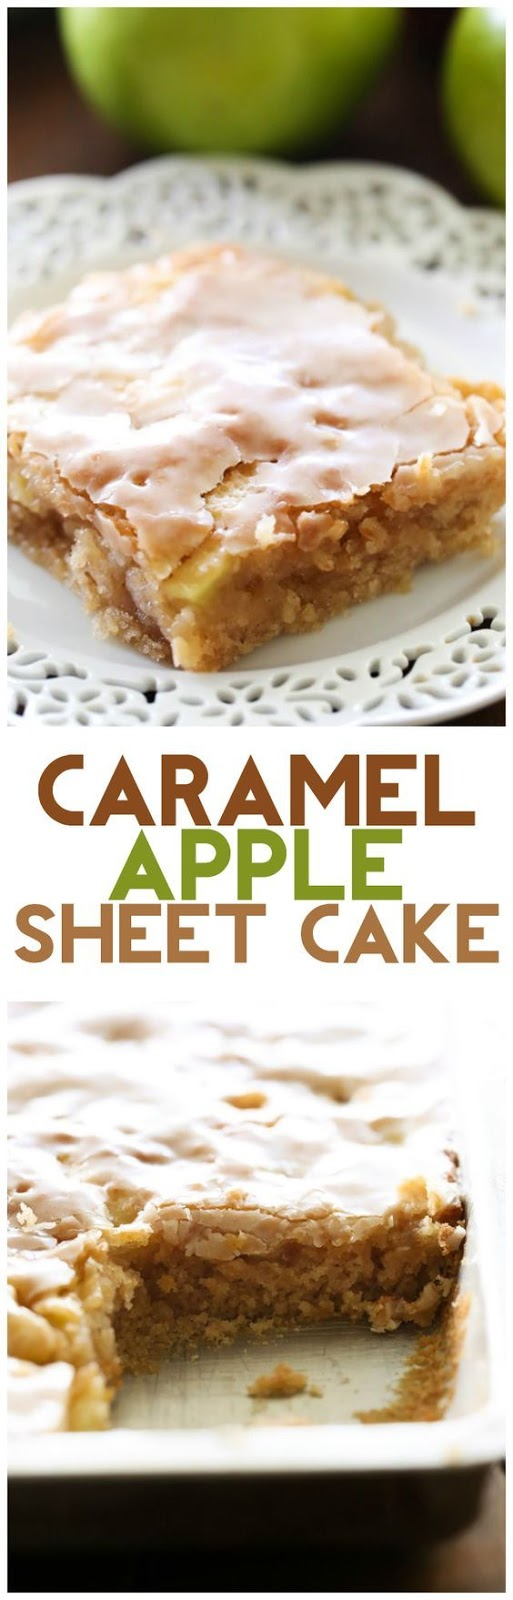 Caramel Apple Sheet Cake… this delicious apple cake is perfectly moist and has caramel frosting infused in each and every bite! It is heavenly!